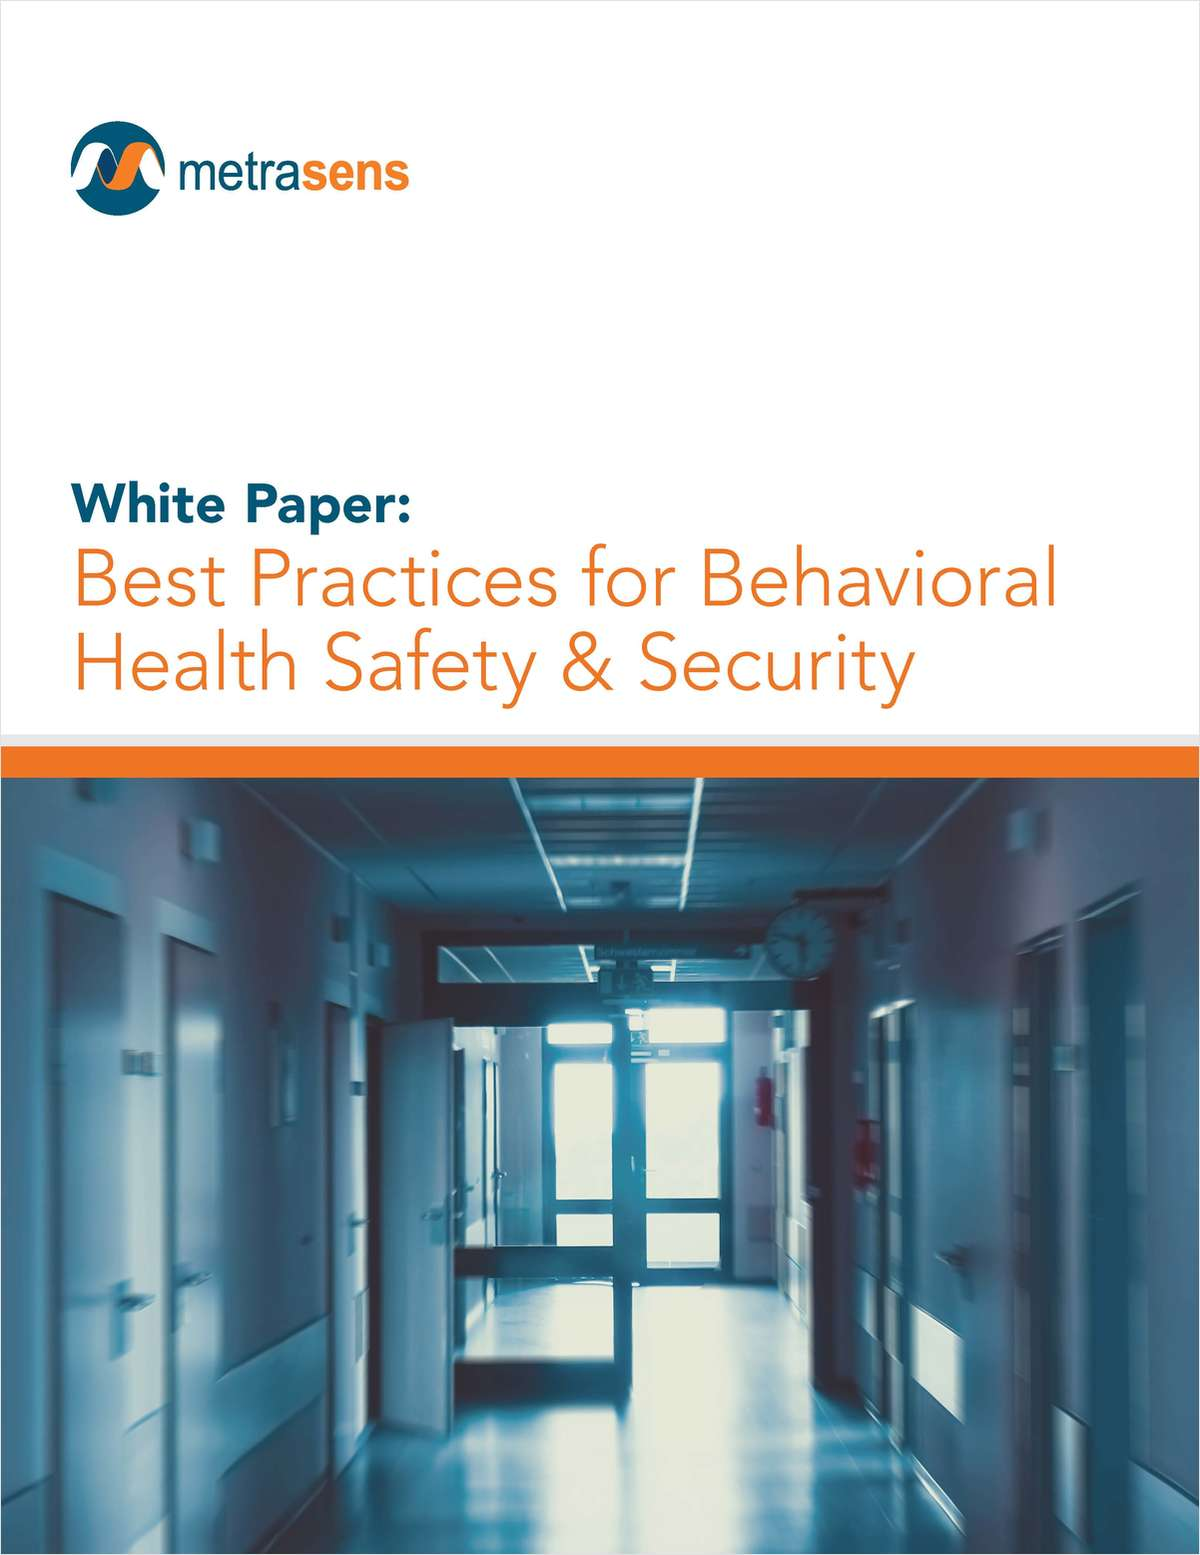 Best Practices for Behavioral Health Safety & Security